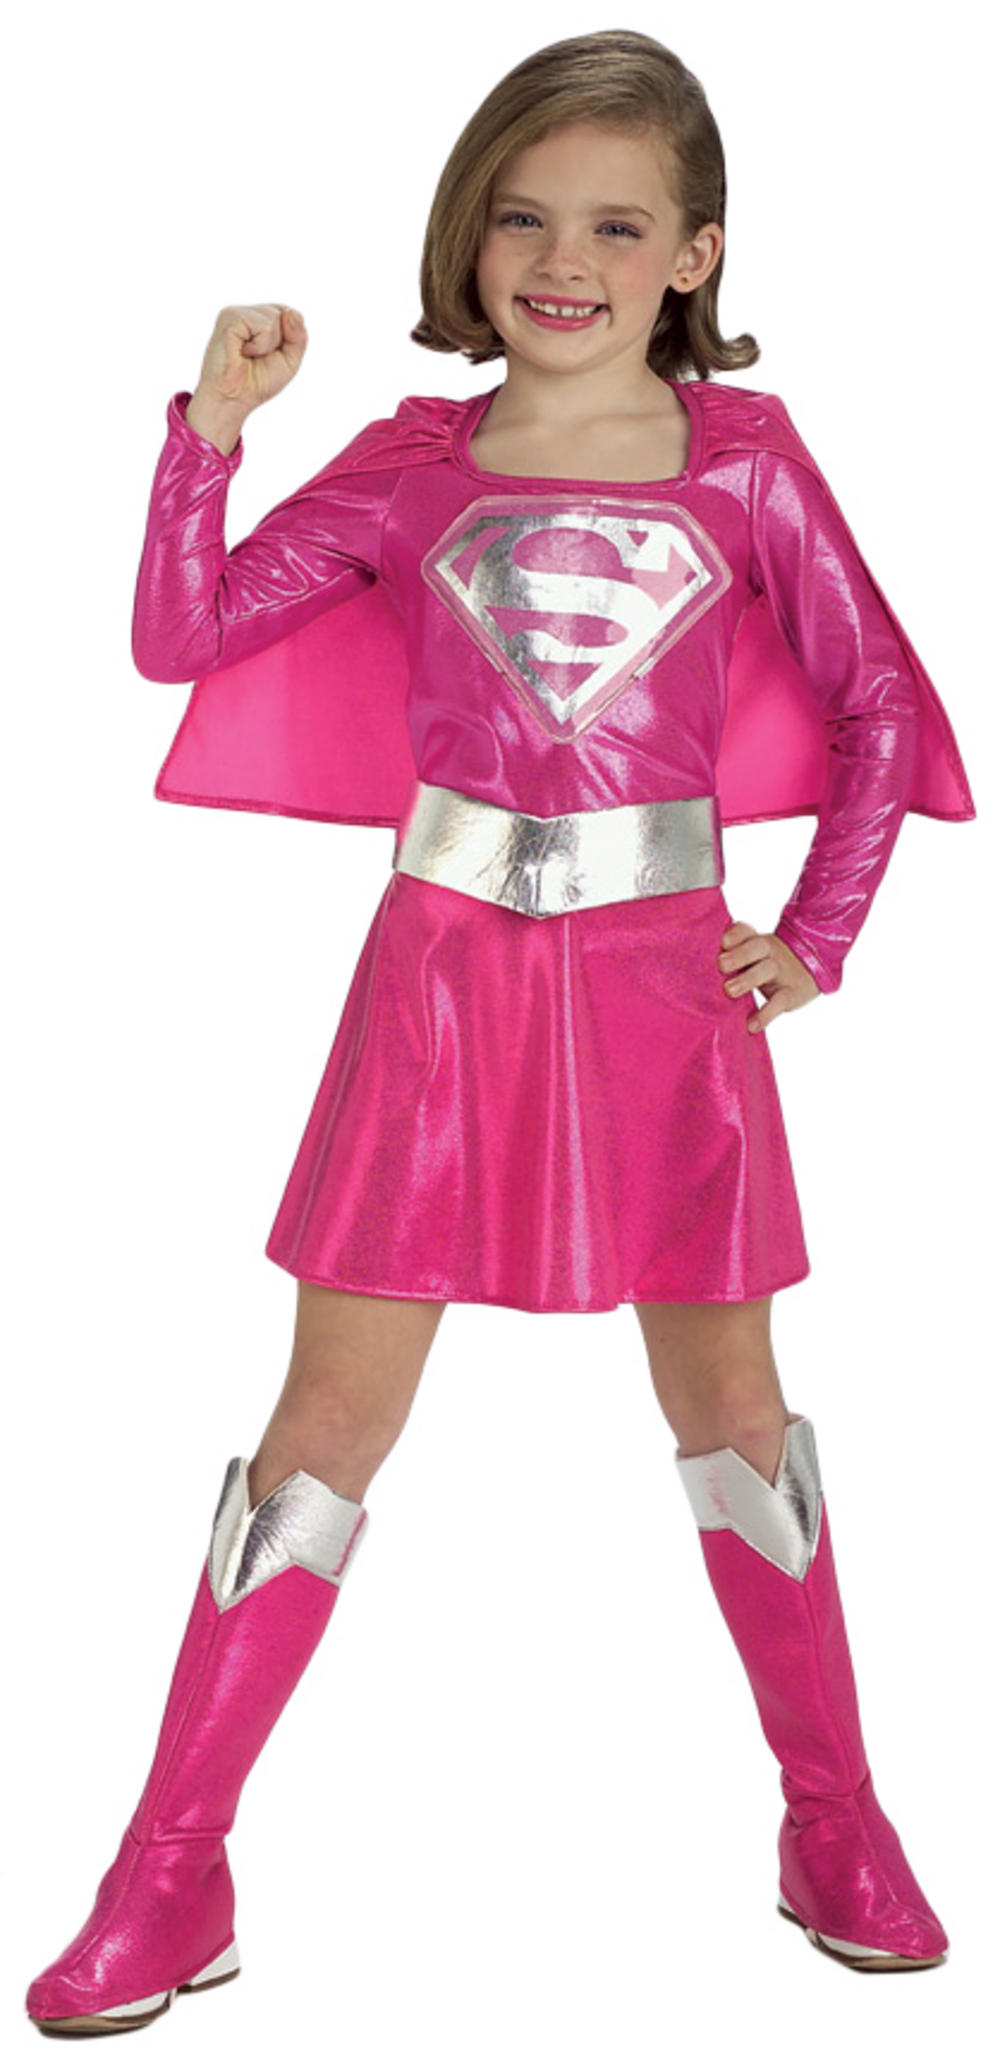 Girlu0027s Pink Supergirl Costume  sc 1 st  Mega Fancy Dress & Girlu0027s Pink Supergirl Costume | TV Book and Film Costumes | Mega ...